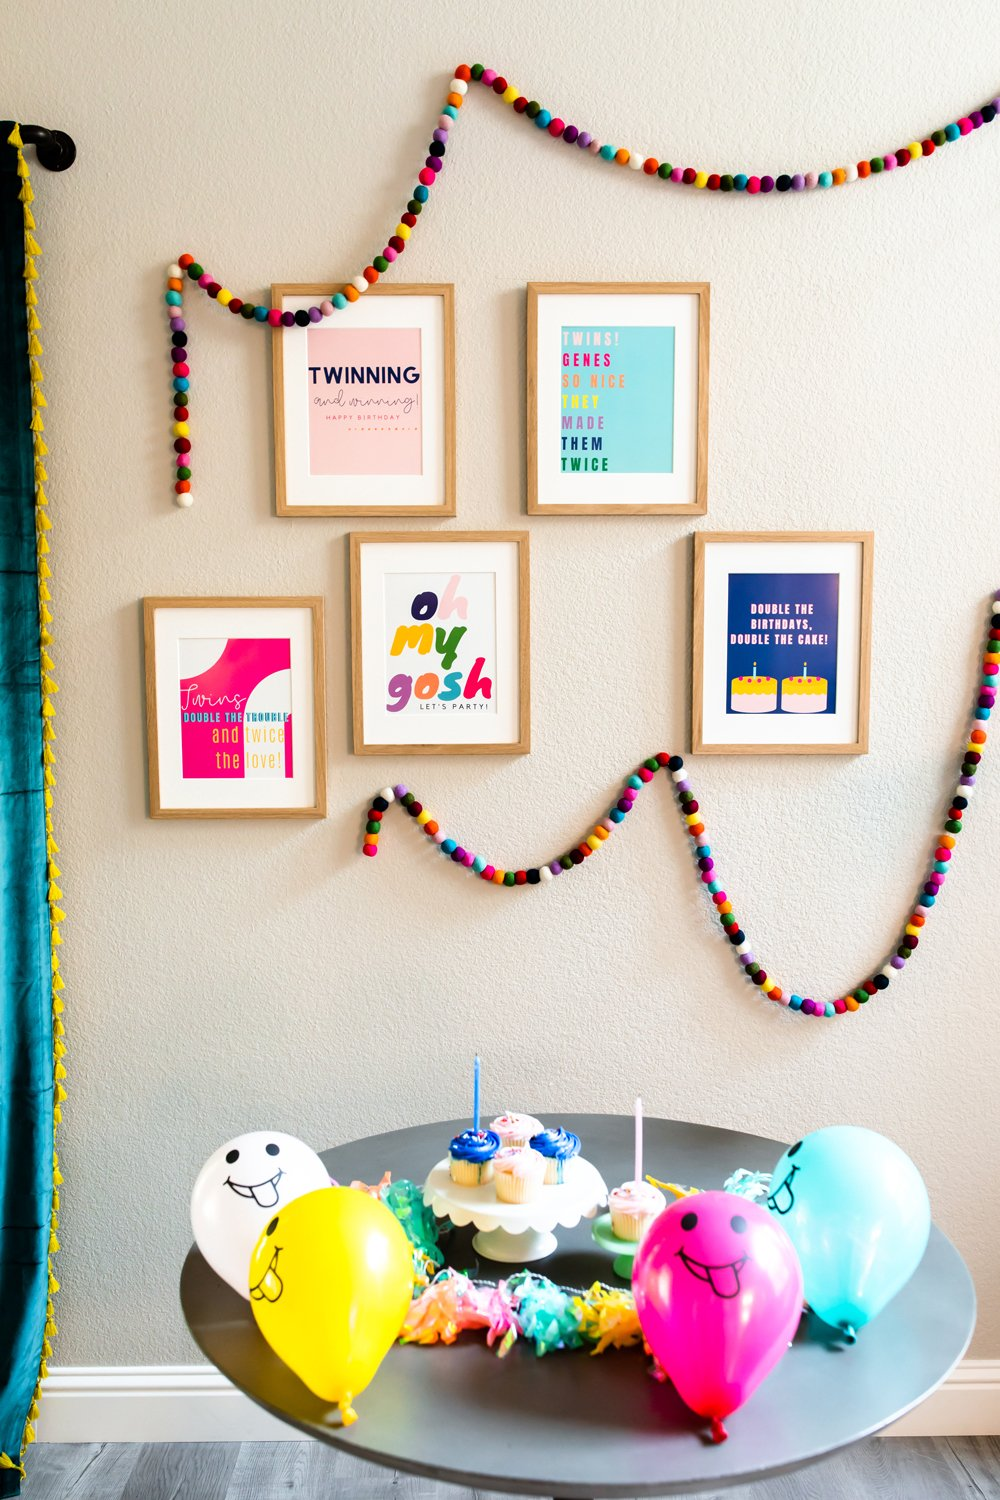 Tim birthday party decoration wall prints and banner